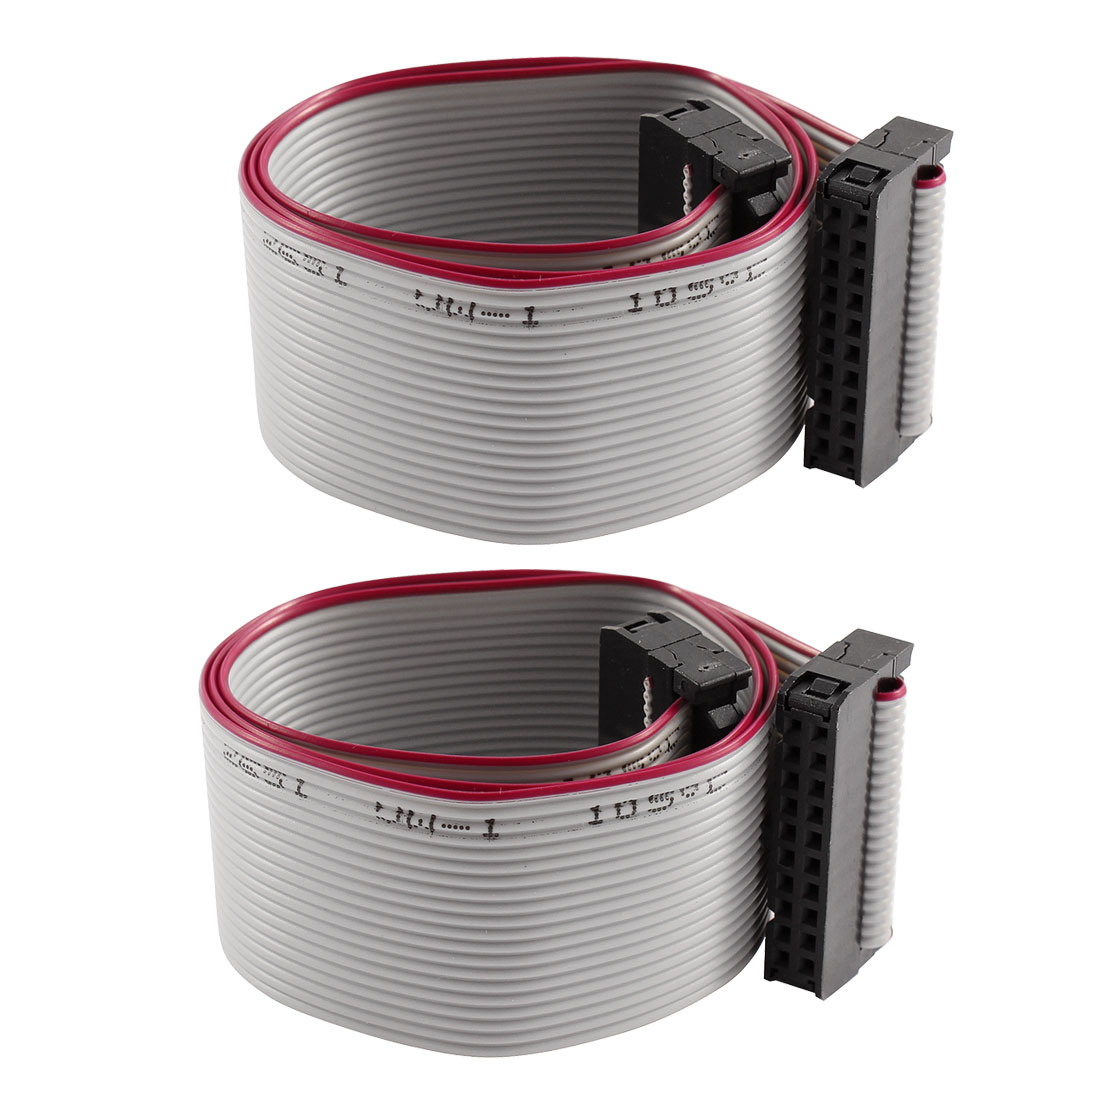 2 Pcs FC-20P IDC 20-Pin F/F Hard Drive Data Extension Wire Flat Ribbon Cable Connector 40cm Long for Motherboard